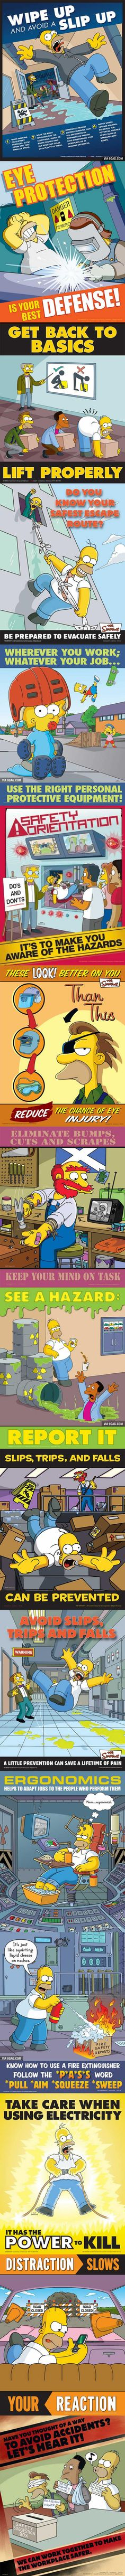 35 Simpson's Safety Posters (Part 1) - 9GAG